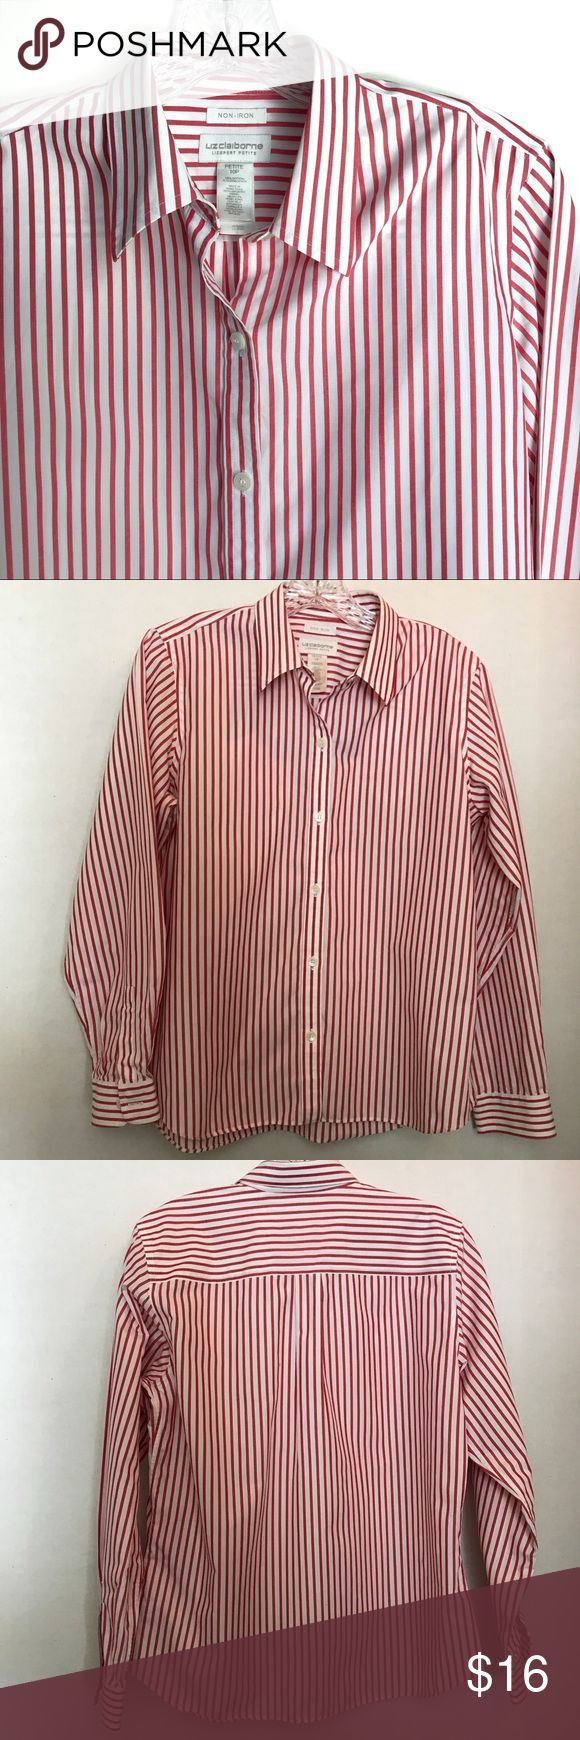 "Liz Claiborne Non Iron Shirt 10P Classic striping makes this one a great one to have in your closet for any season. Pre-loved and in good shape. 10P. 100% Cotton. Shoulder to hem: 24"", outer sleeve: 23"", pit to pit: 20"".   Shop smart by maximizing your shipping $. Use the filter function and peruse my closet of over 1,000 items! Bundle and save!! Liz Claiborne Tops Button Down Shirts"